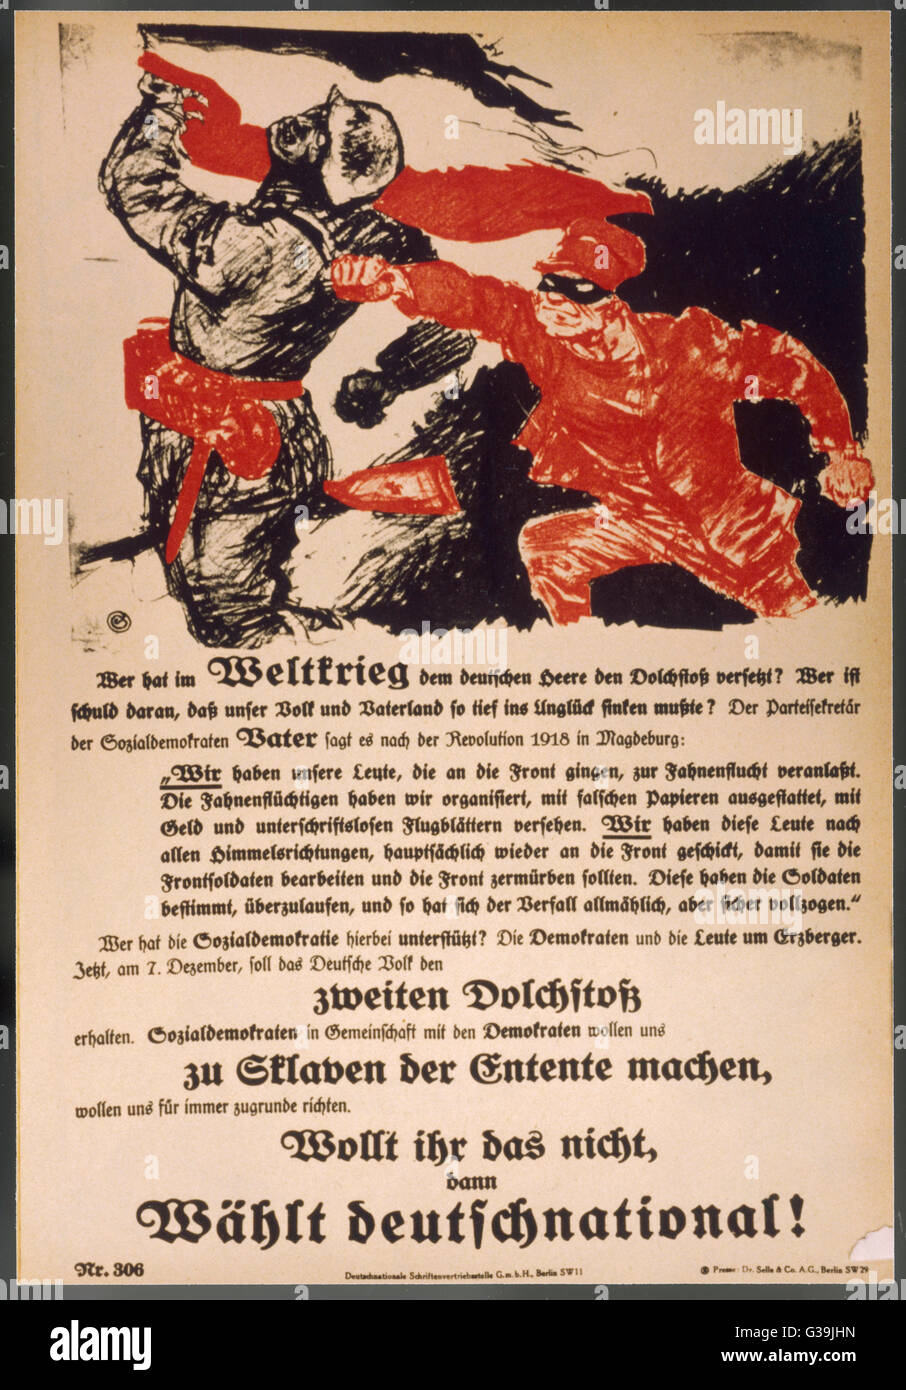 German Nationalist poster  creates the myth of the 'stab  in the back' to explain  Germany's defeat - Stock Image